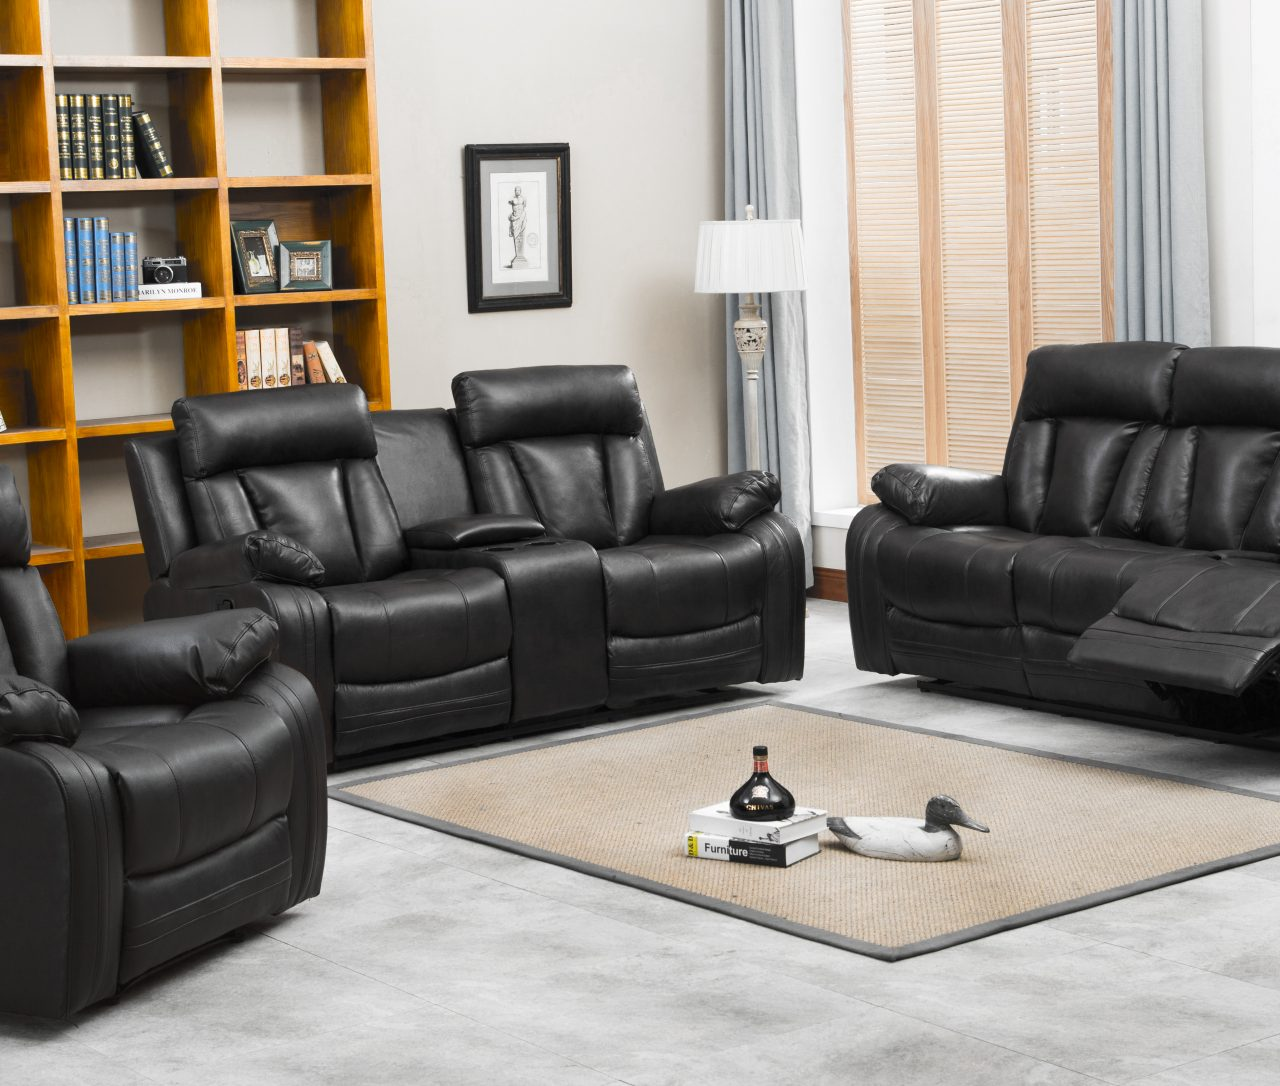 Naples Reclining Sofa Loveseat wcupholders and console set